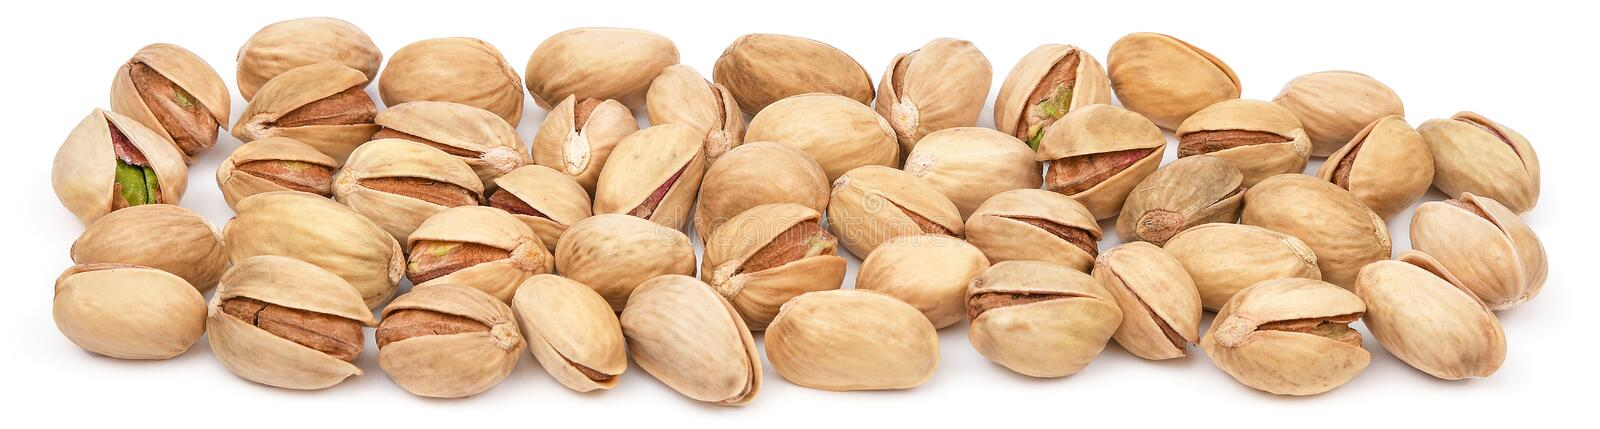 Pistachio heap isolated on white background. Pistachios close-up panorama. Nuts pile.  stock images